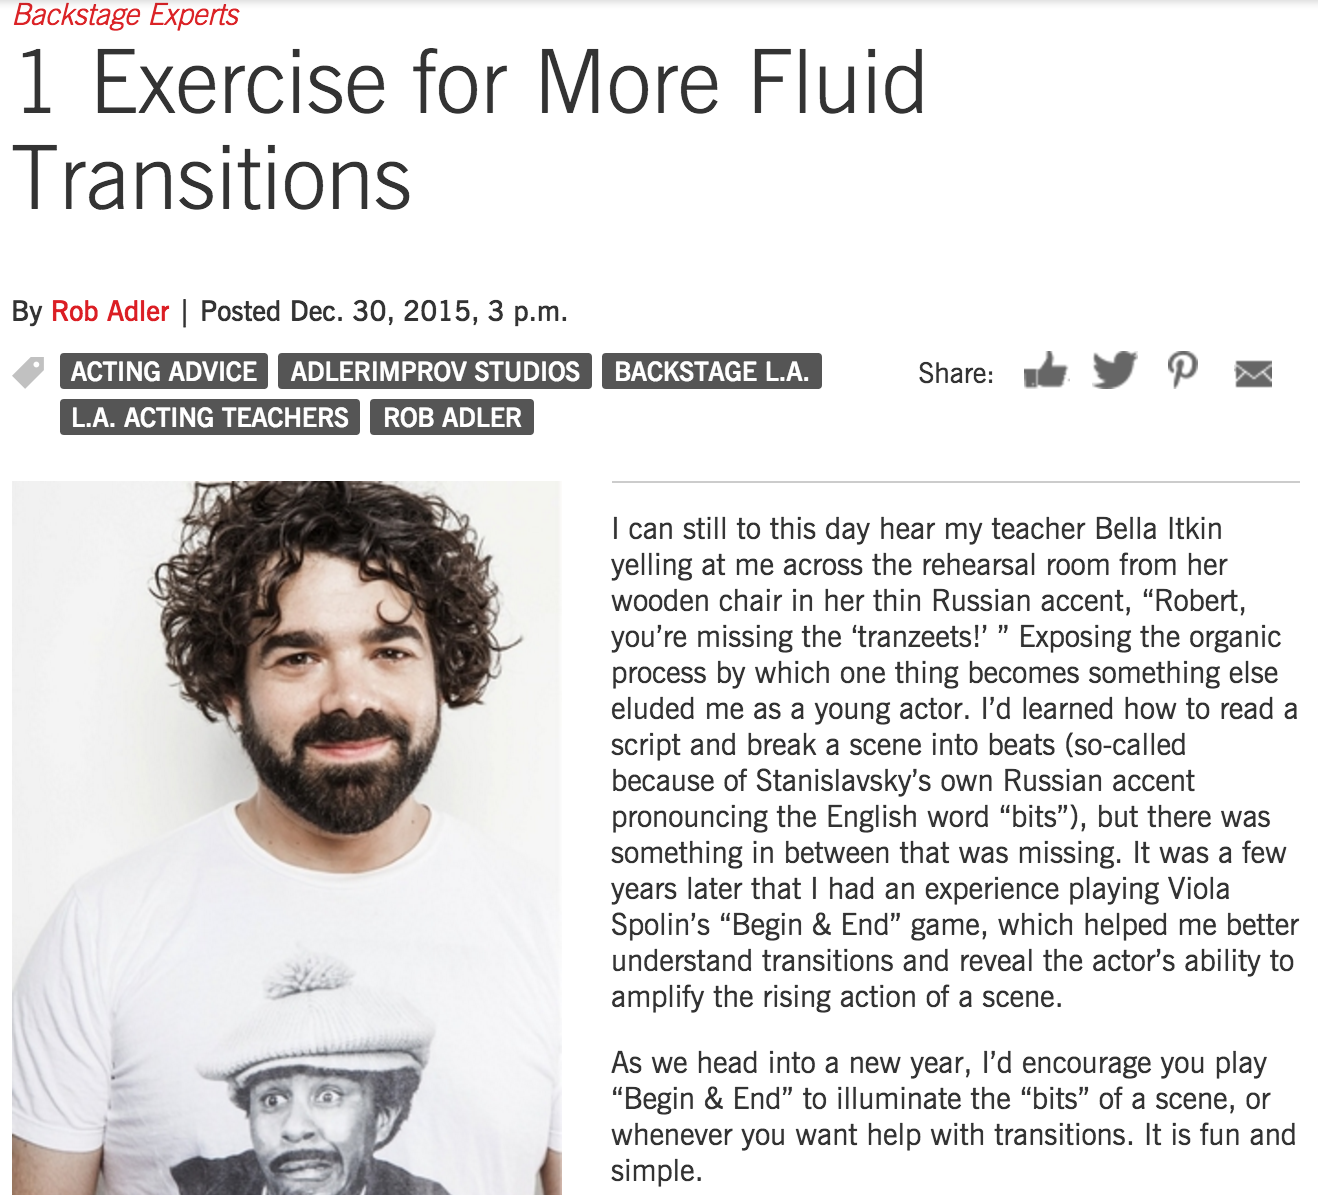 Rob Adler - Backstage - 1 Exercise for More Fluid Transitions